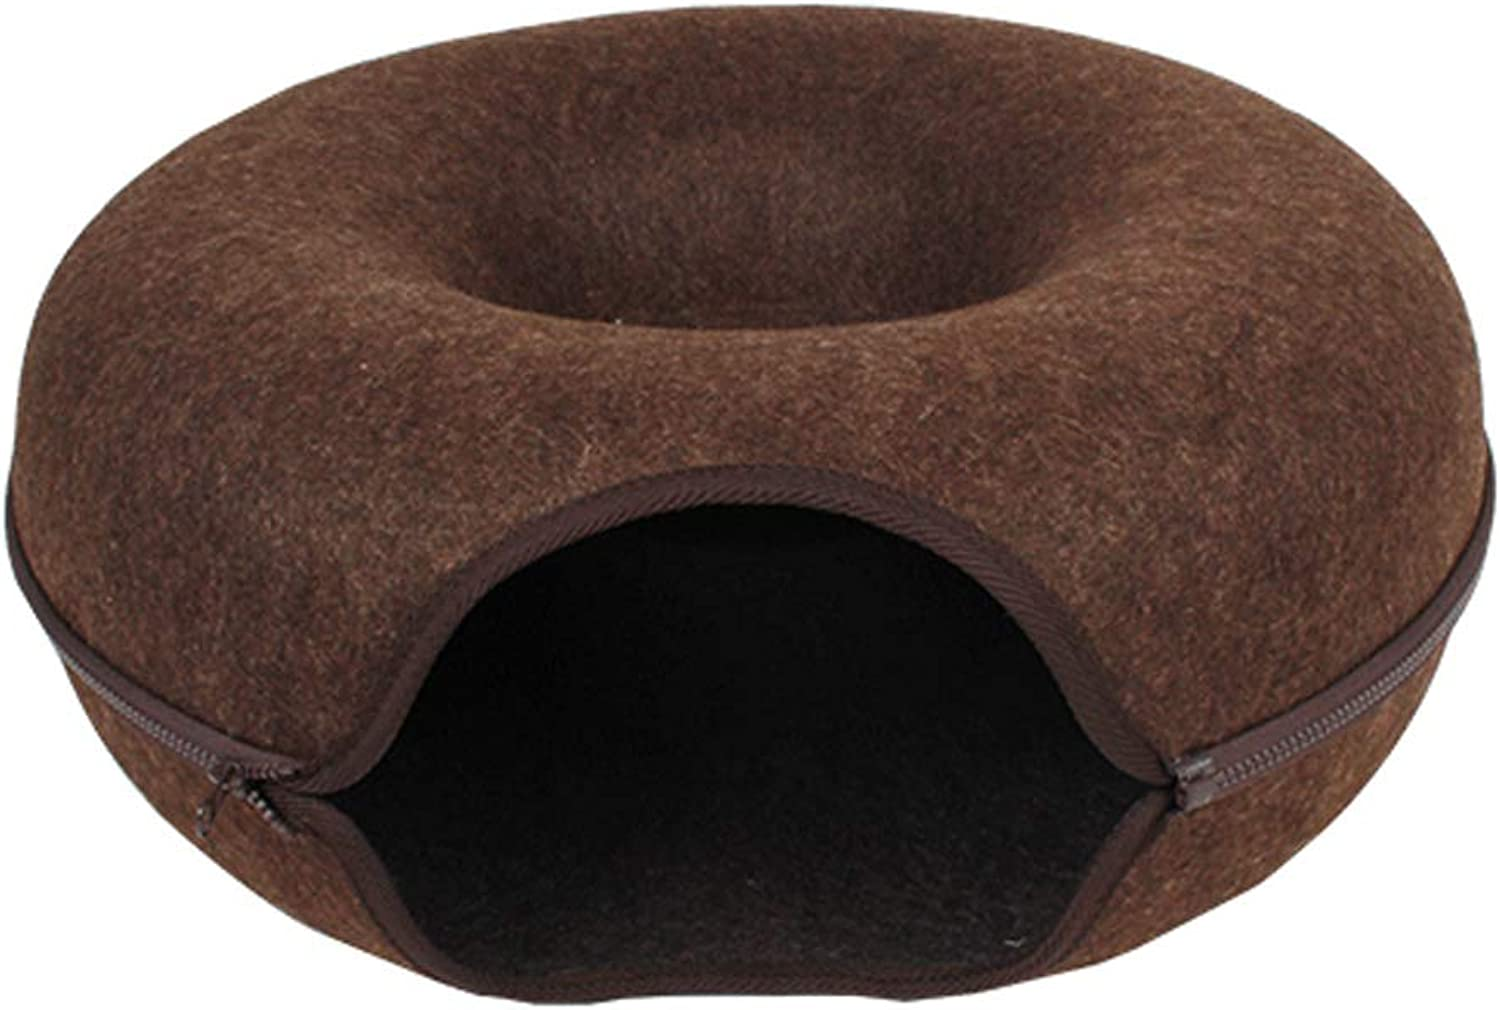 C_1X Net Red Cat Litter, Pet Nest, Cat House, Pet Bed, Cat Toy Tunnel, Cat Supplies, Removable Cat Villa House, (Brown) (color   Brown)